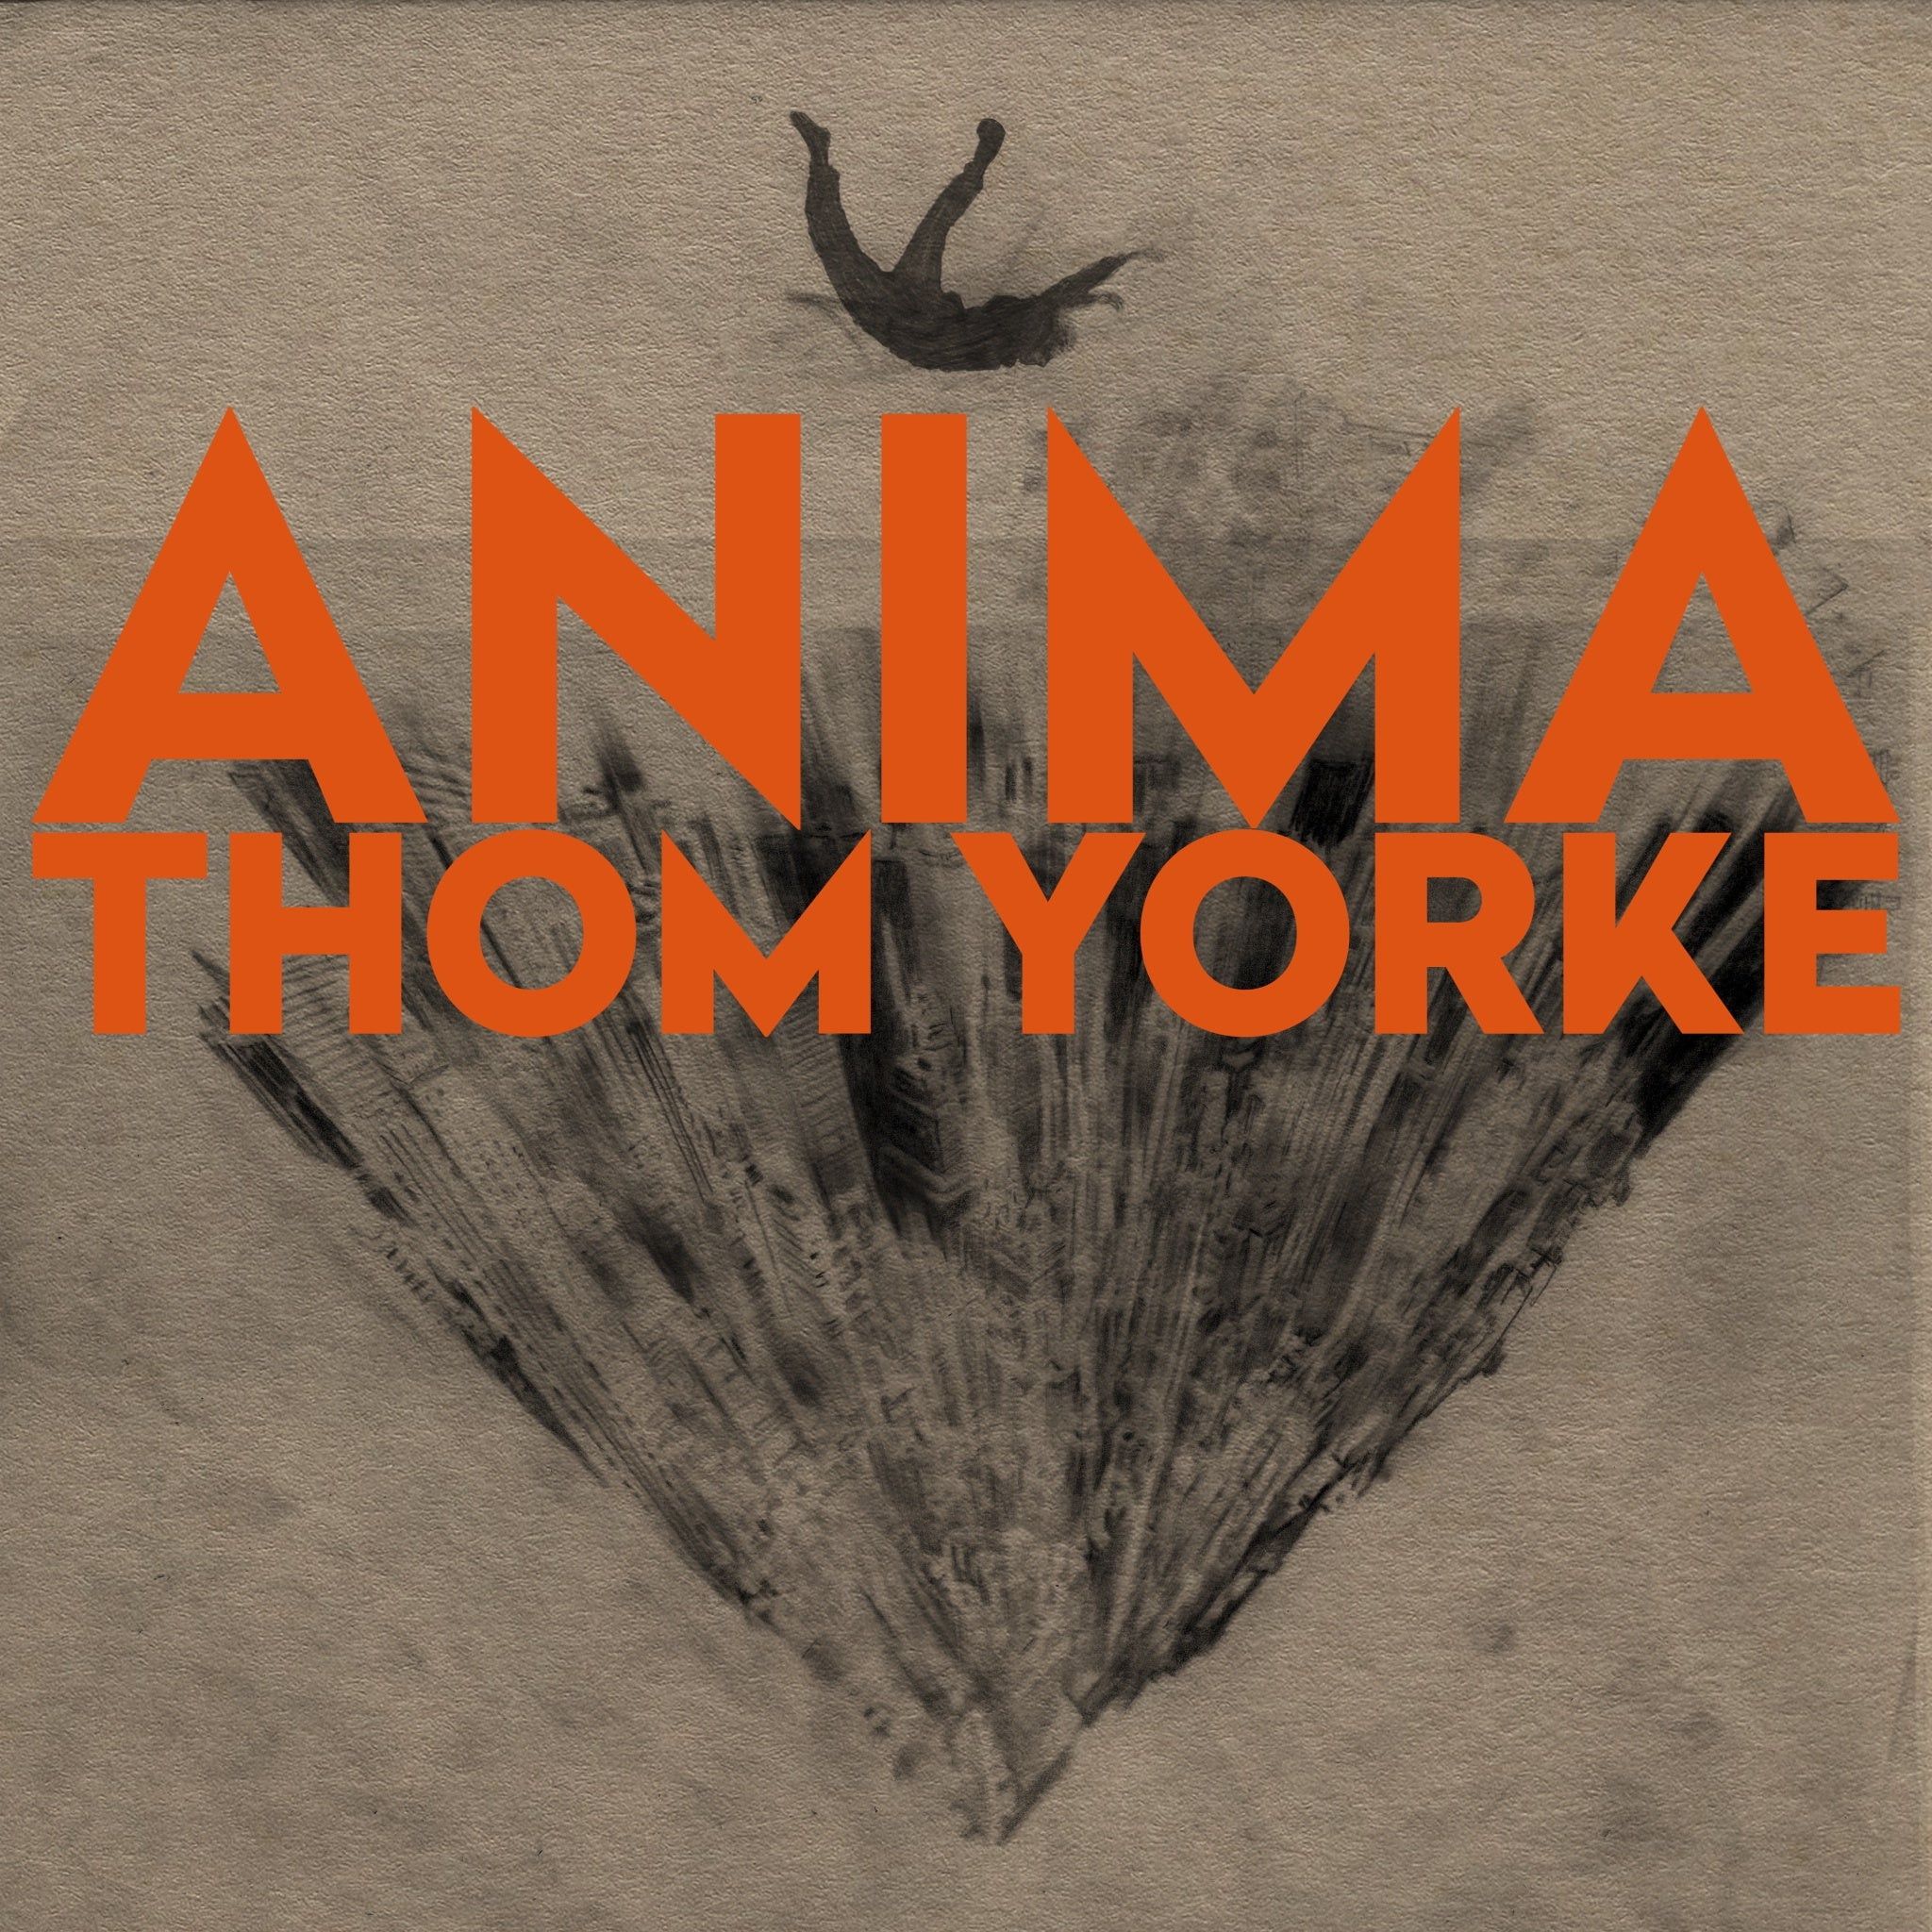 Thom Yorke - ANIMA - New 2 Lp Record 2019 XL USA Indie Exclusive Orange Vinyl & Download - Rock / Electronic